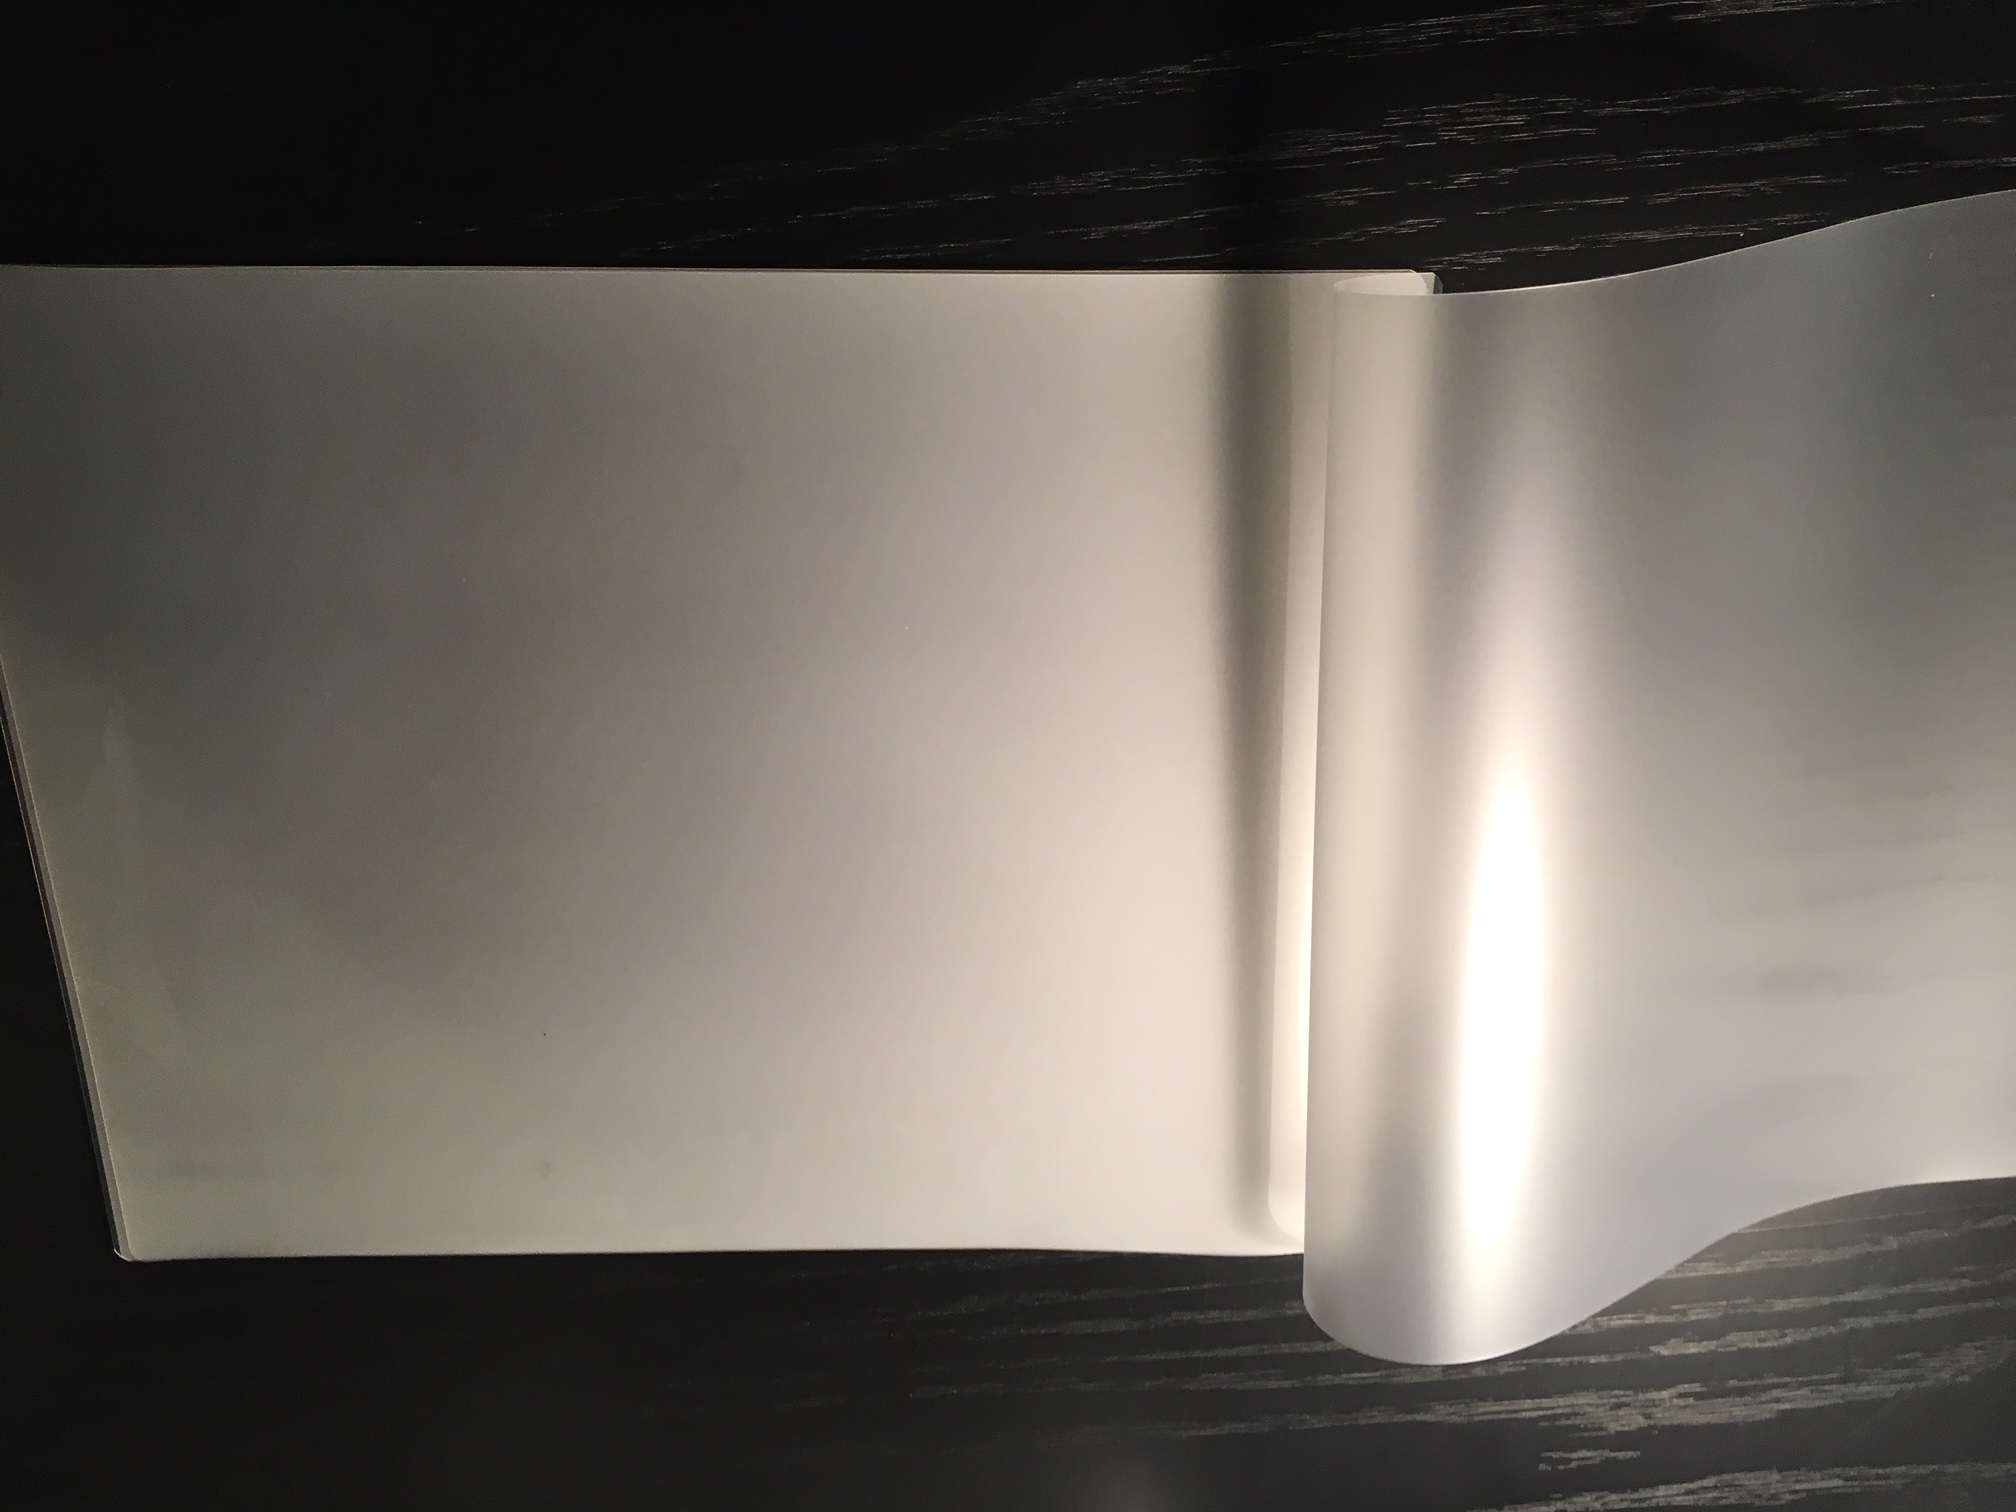 Picture of Laying the Lamination Sheets